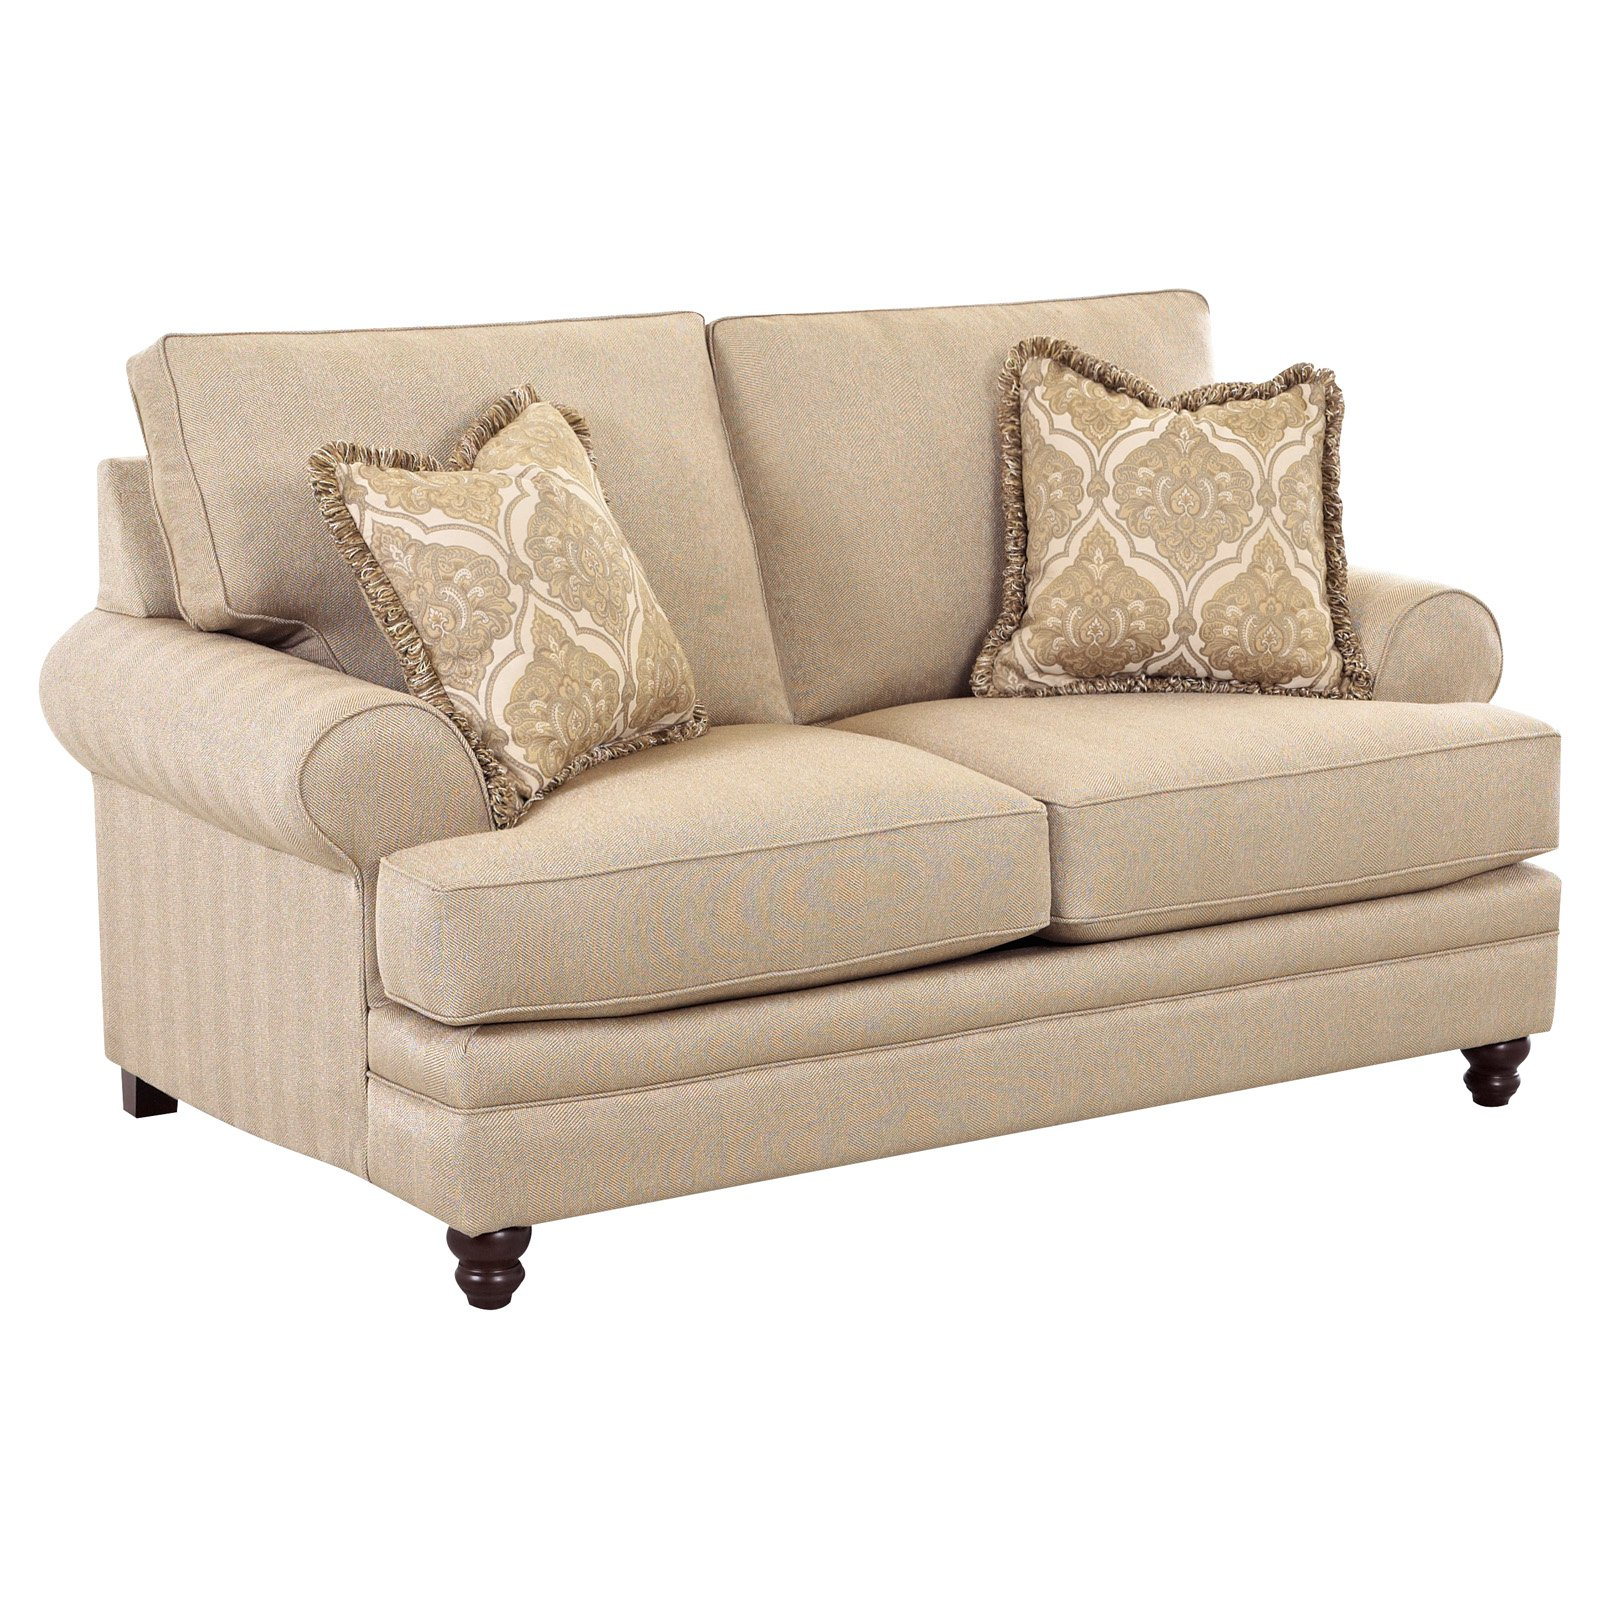 Klaussner Darcy Fabric Loveseat by Overstock